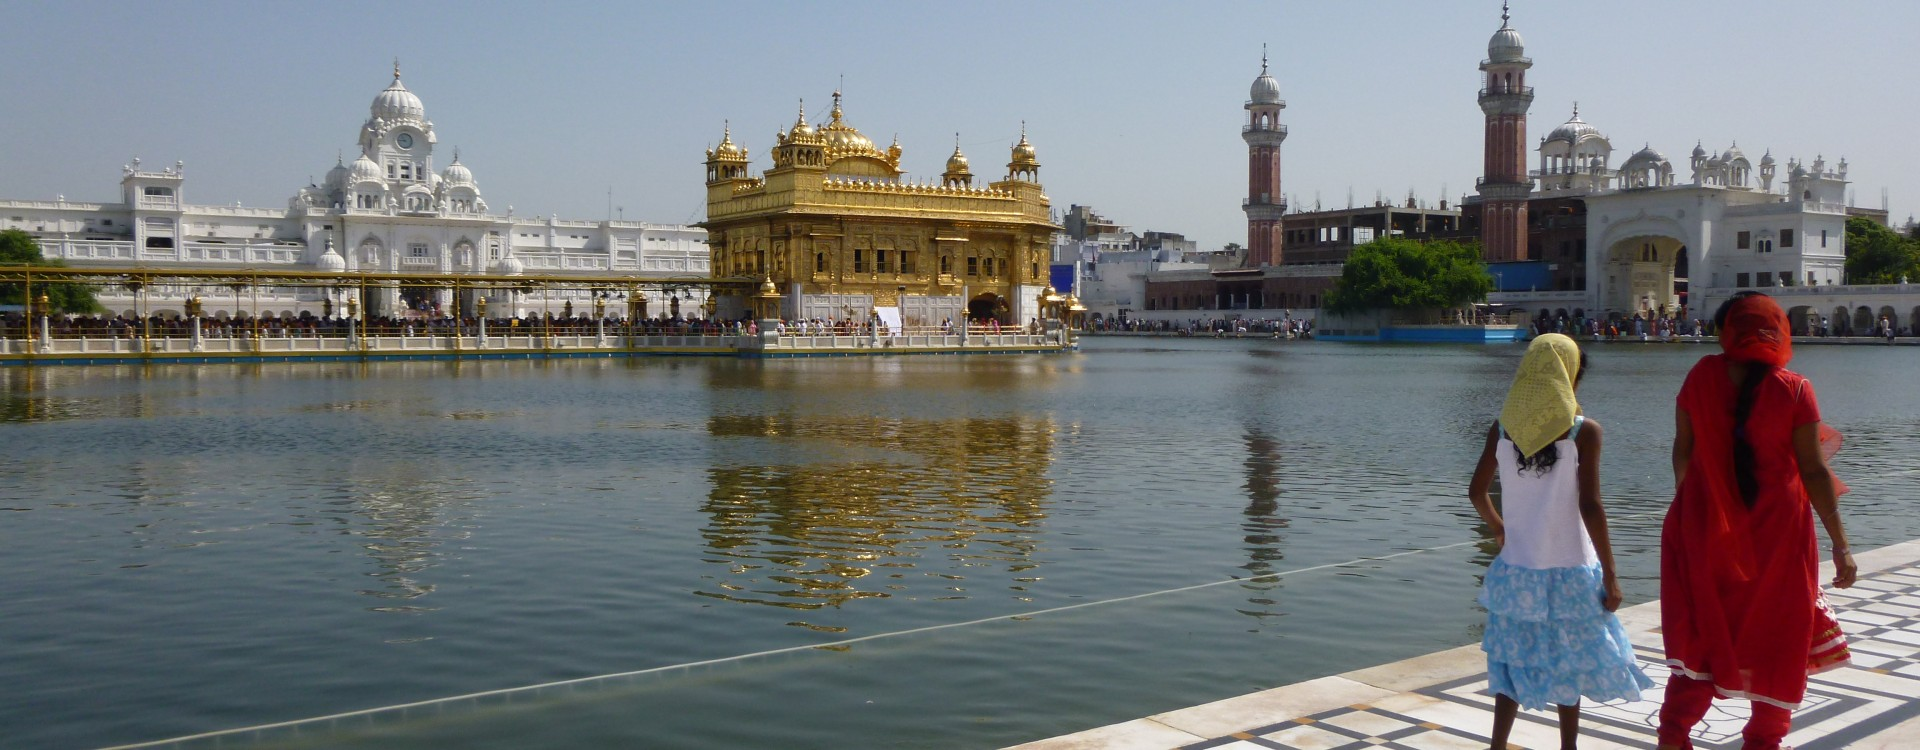 Morning visit to the Golden Temple at Amritsar